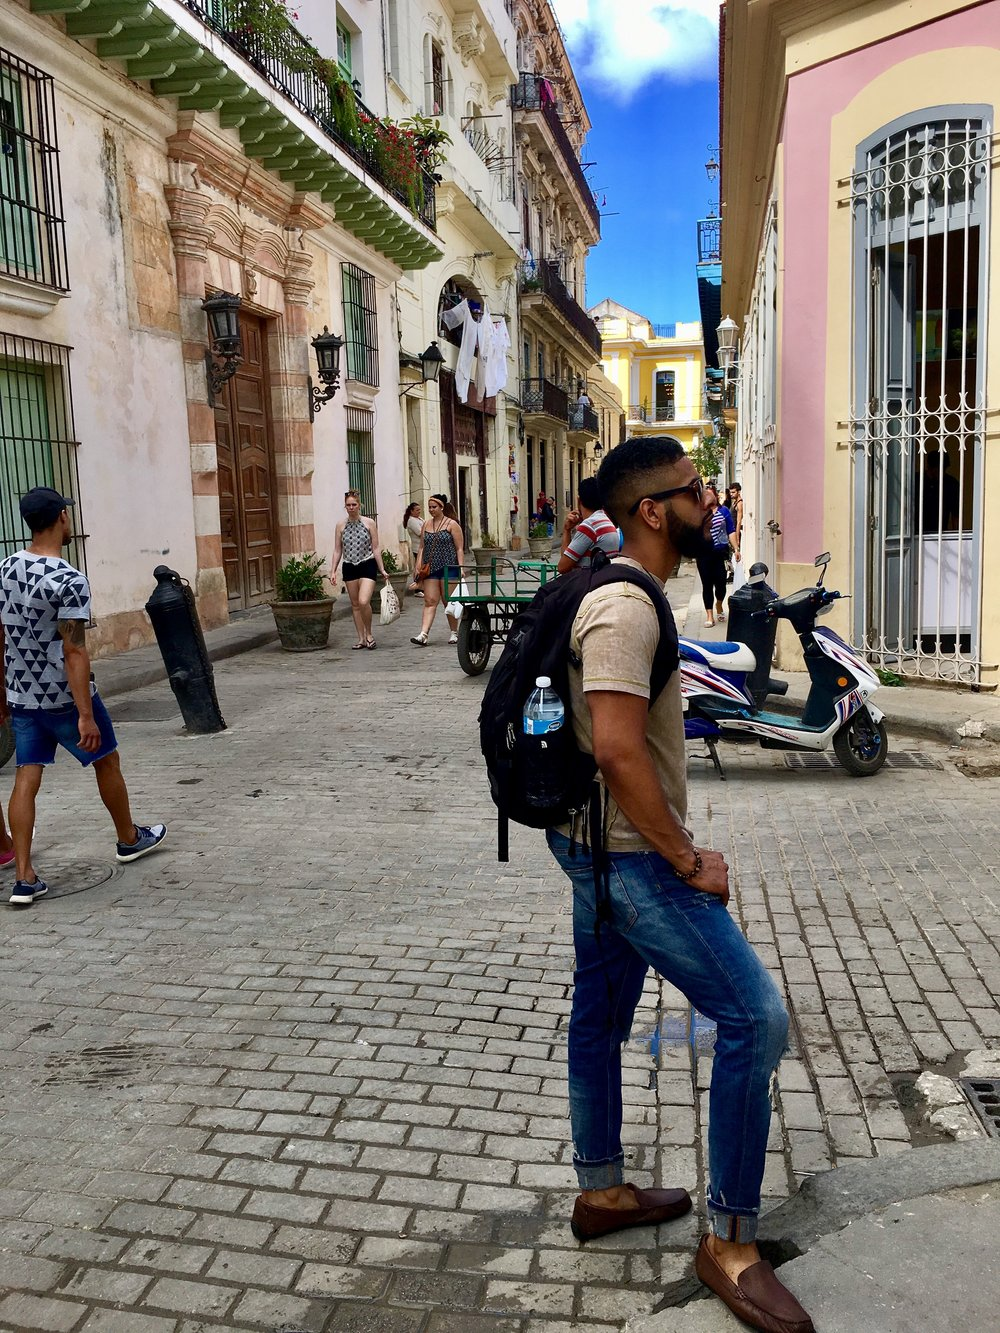 Style Endorsed by D.Garcia (Owner).   Image: Roaming the streets of Havana, Cuba!